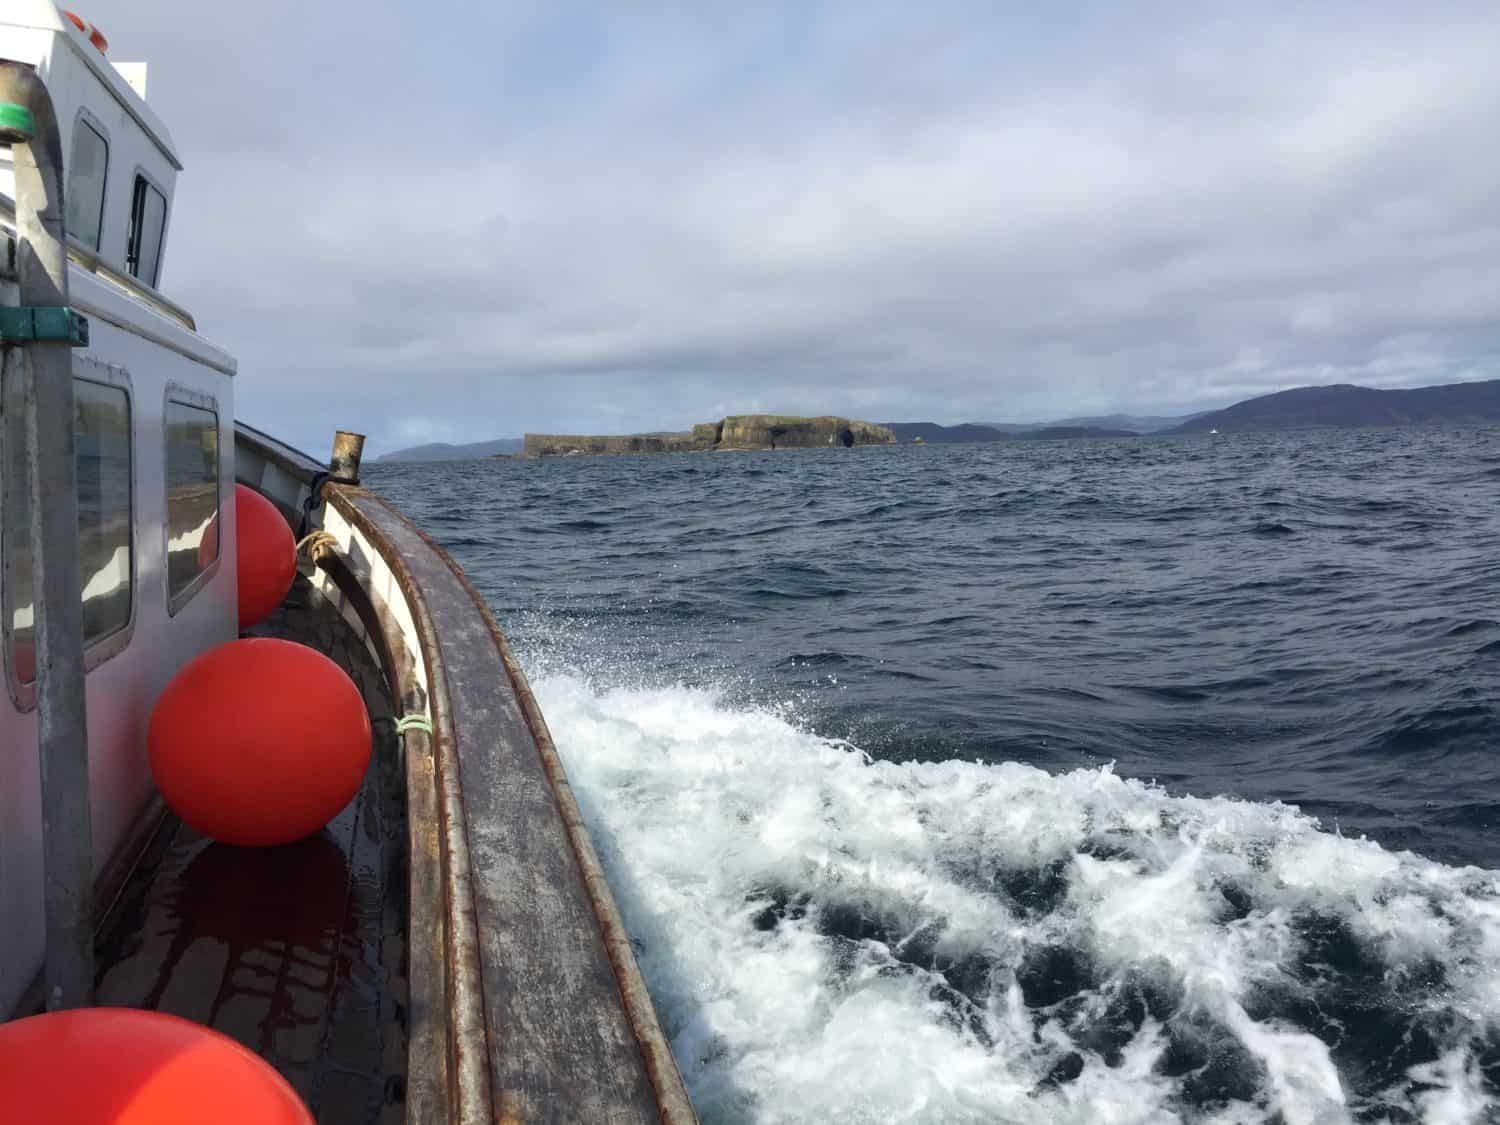 Our boat (the Iolaire) approaching the Isle of Staffa